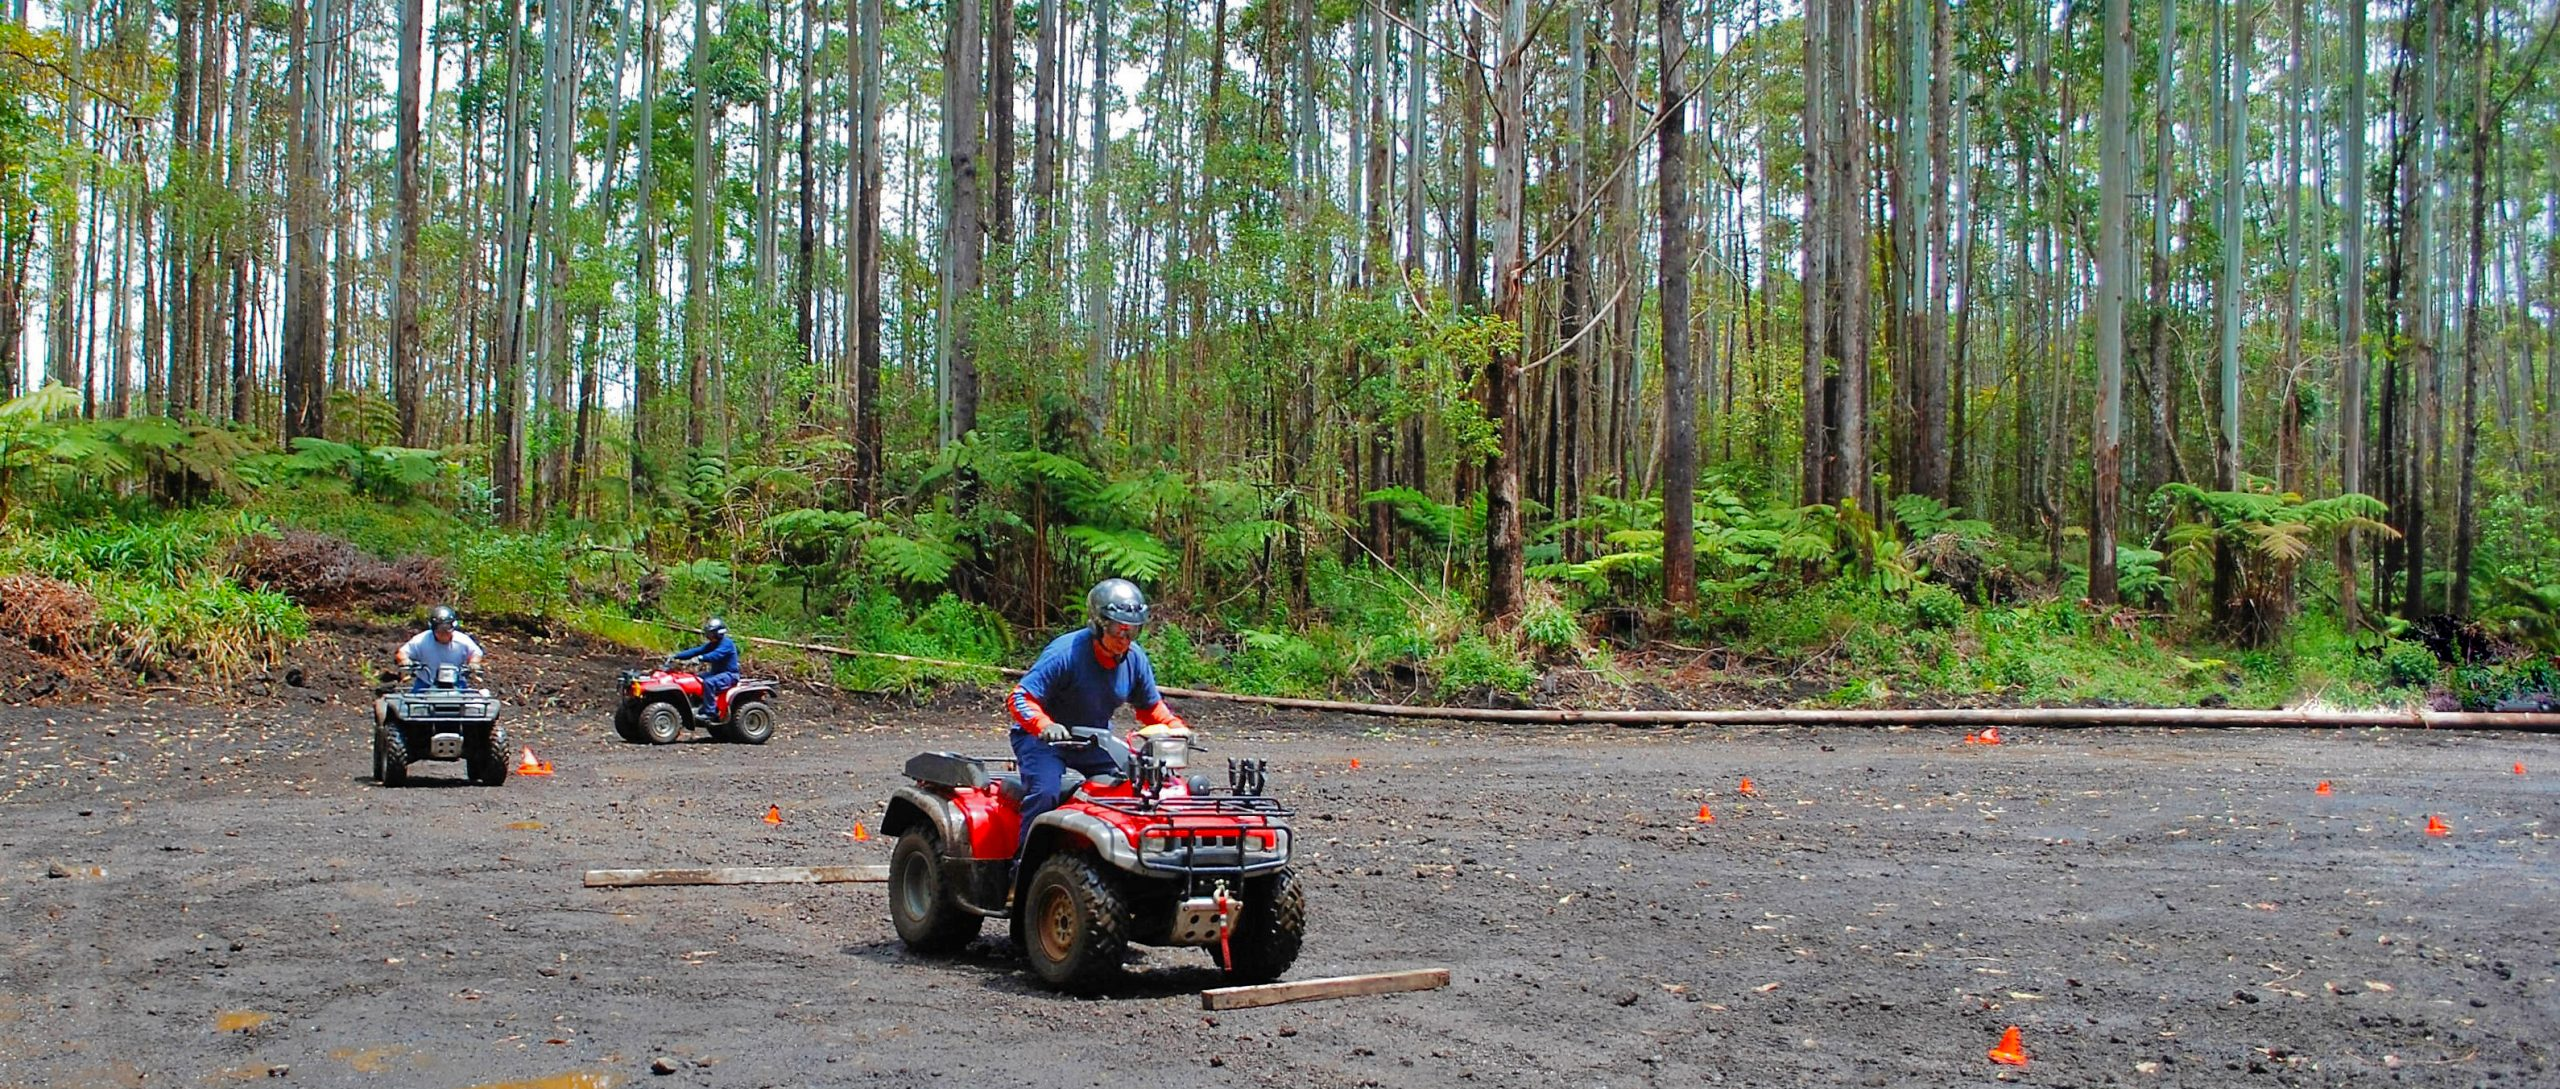 ATV riders at the Upper Waiakea ATV and Dirt Bike Park on Hawaii Island.